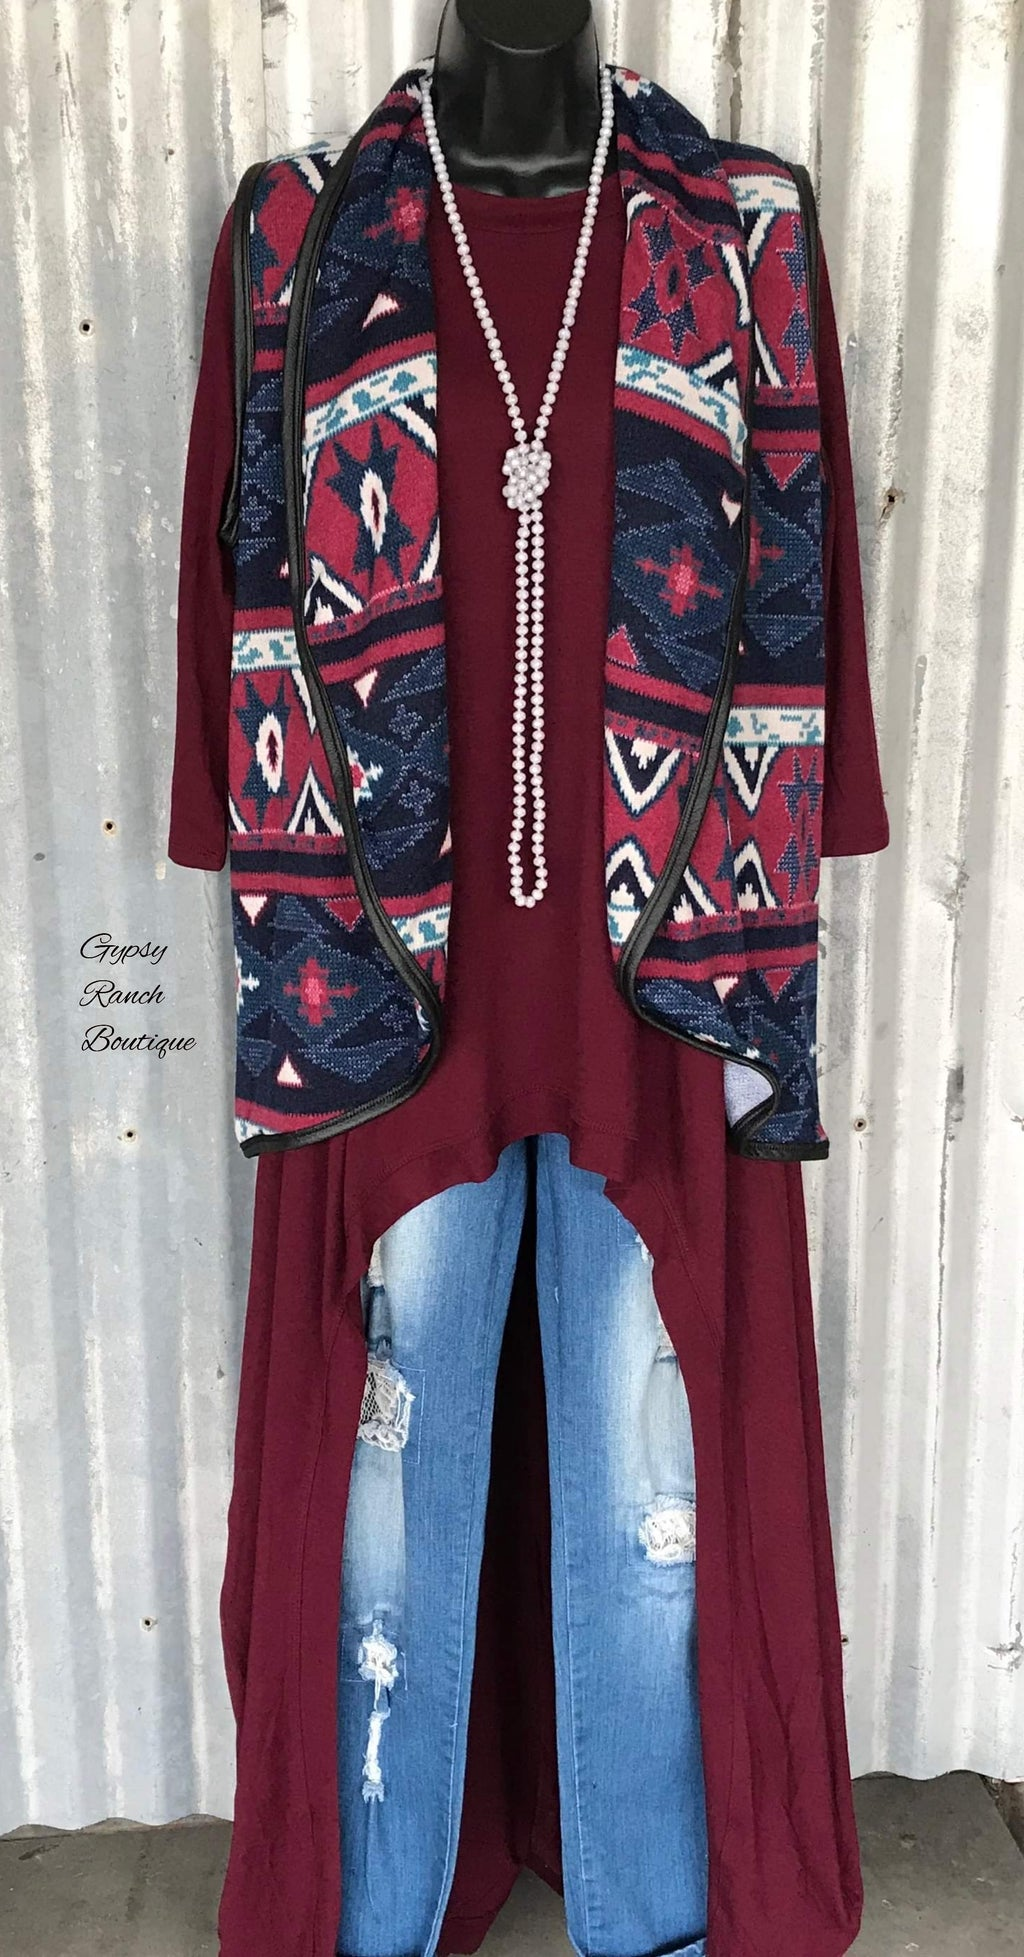 Gemma Tribal Vest - Also in Plus Size